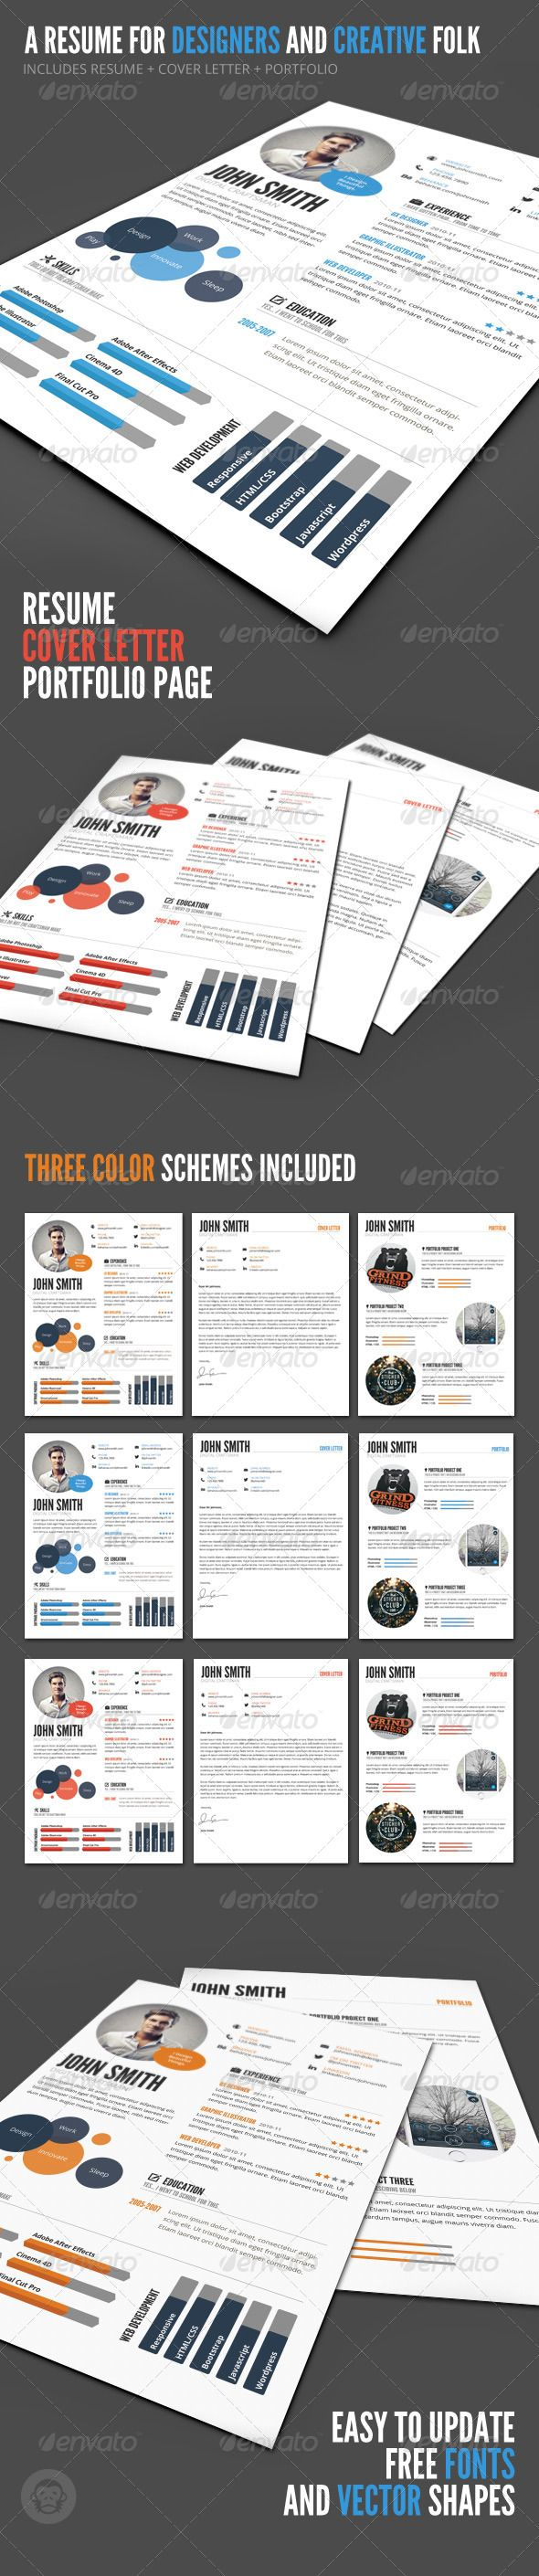 InfoGraphic Style Resume Template 237 best CV